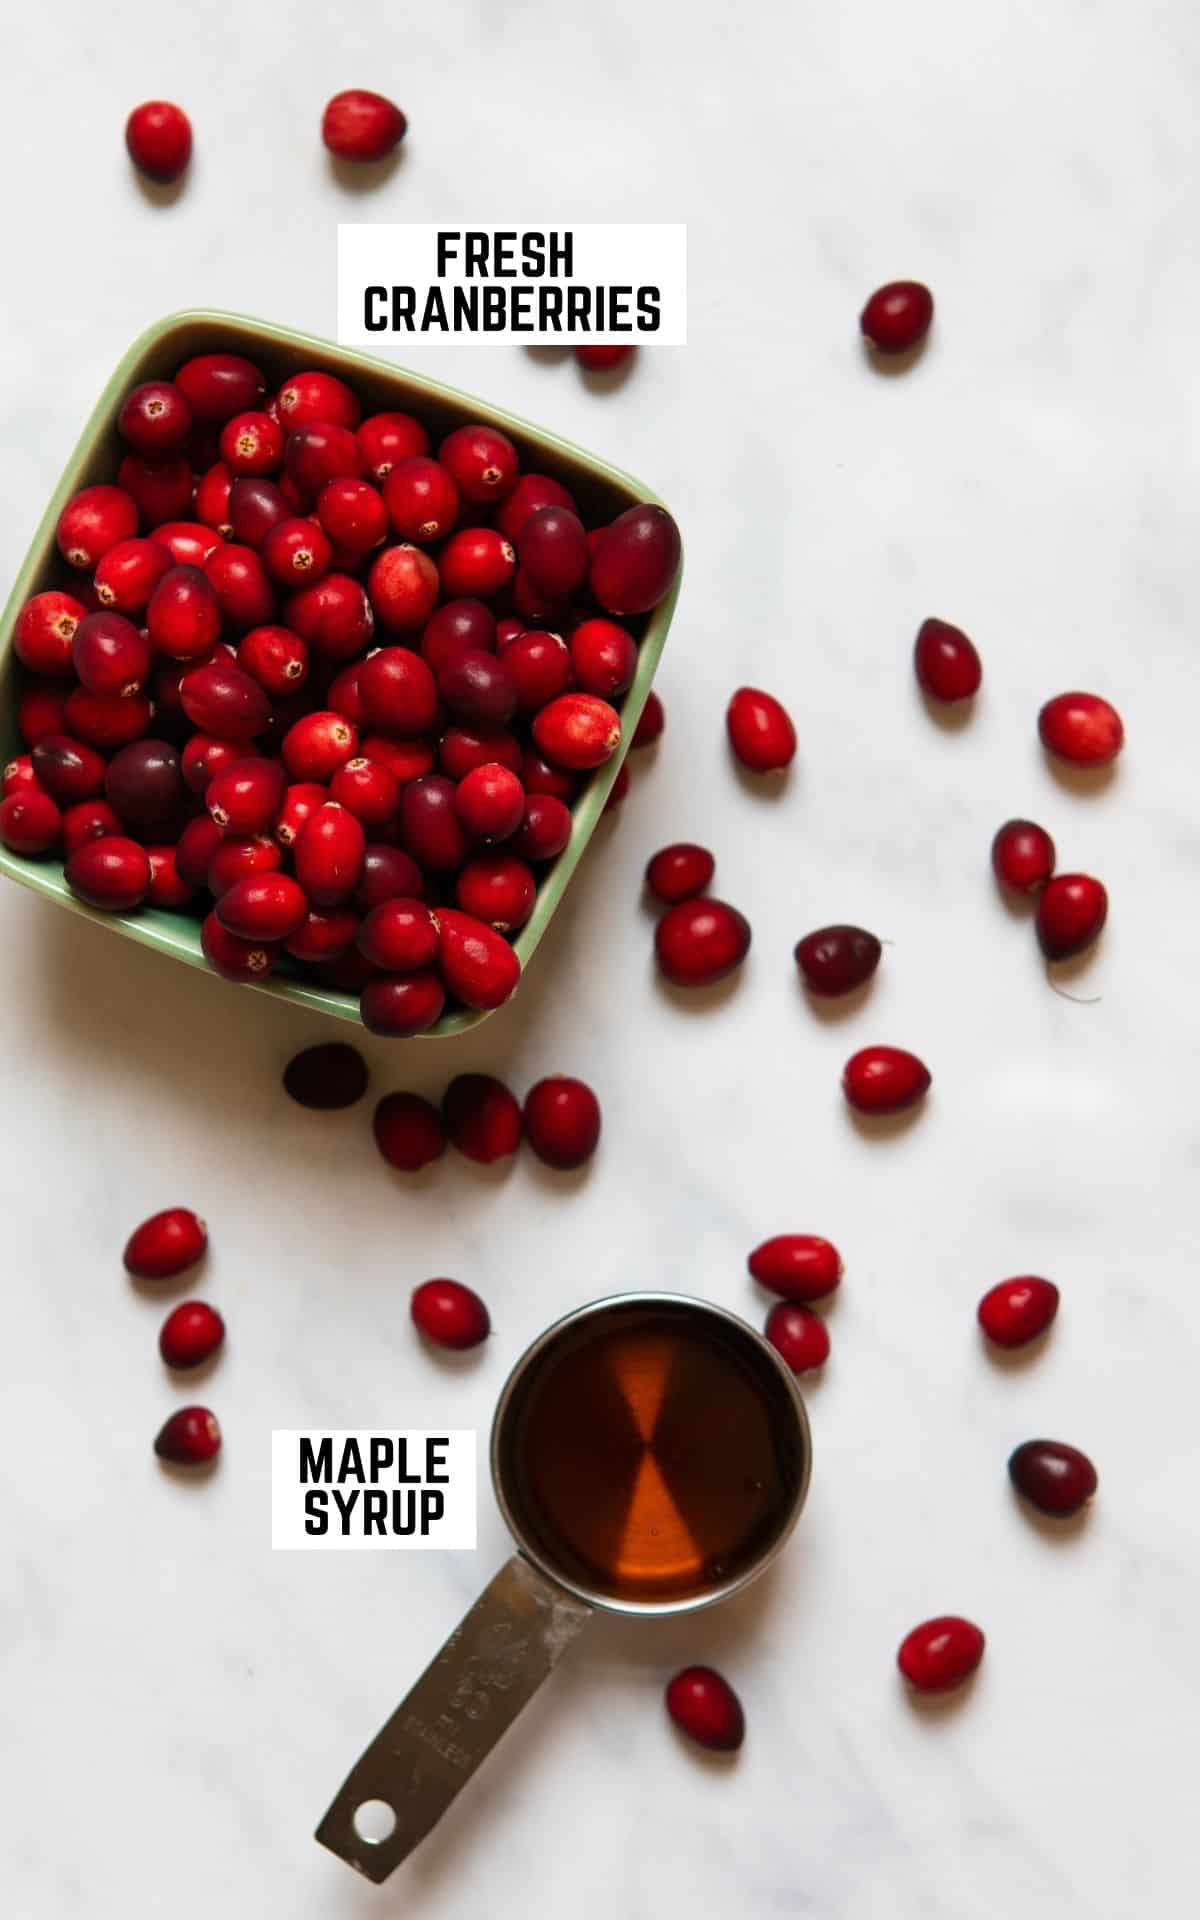 Image of ingredients to make homemade cranberry sauce: fresh cranberries in a bowl and a measuring cup with maple syrup.